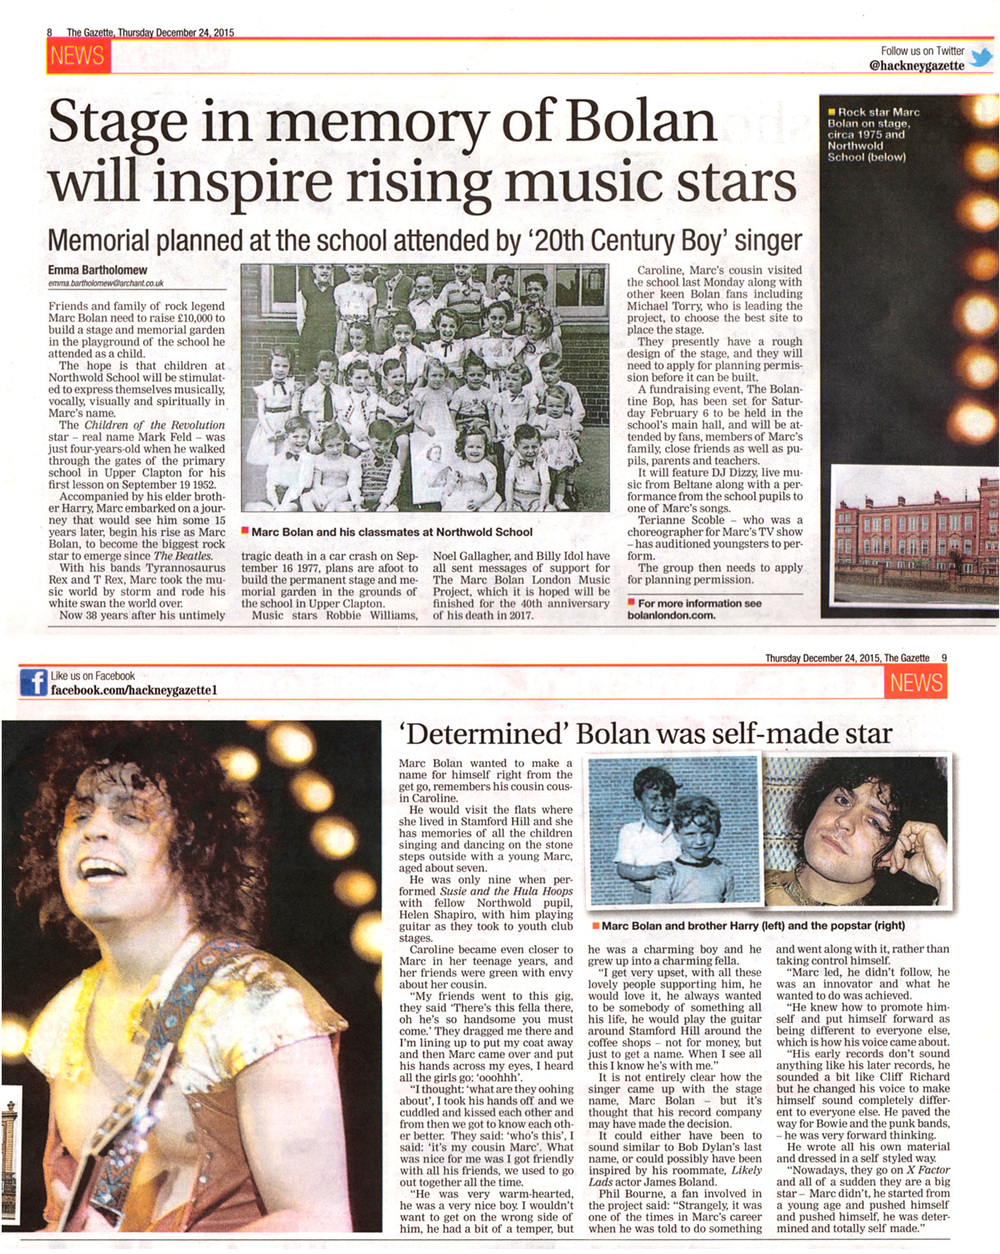 Marc_Bolan_London_Music_Project_Hackney_Gazette_.JPG